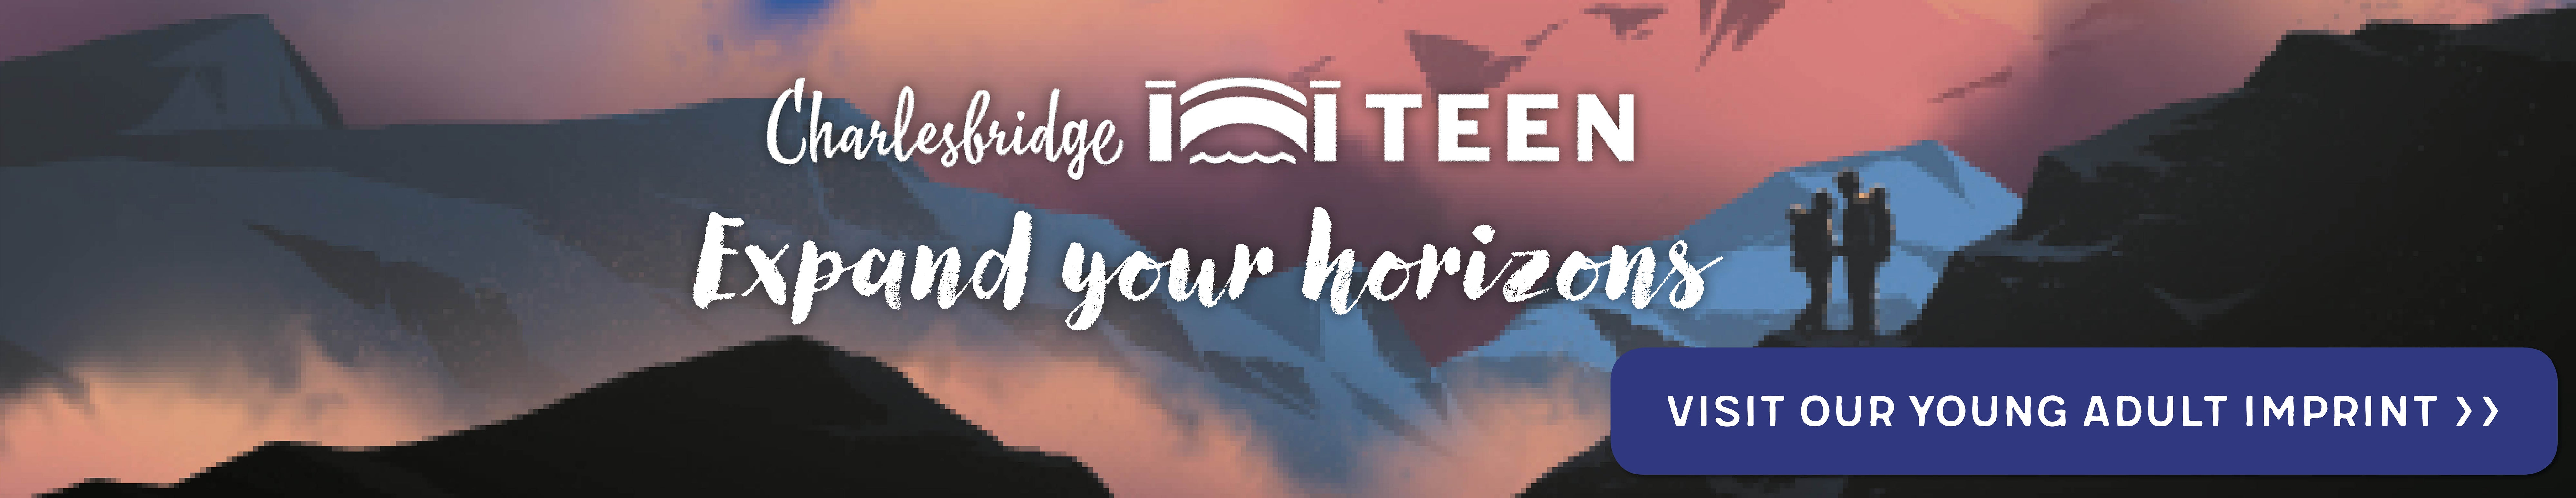 CharlesbridgeTEEN: Expand Your Horizons. See our Young Adult Imprint